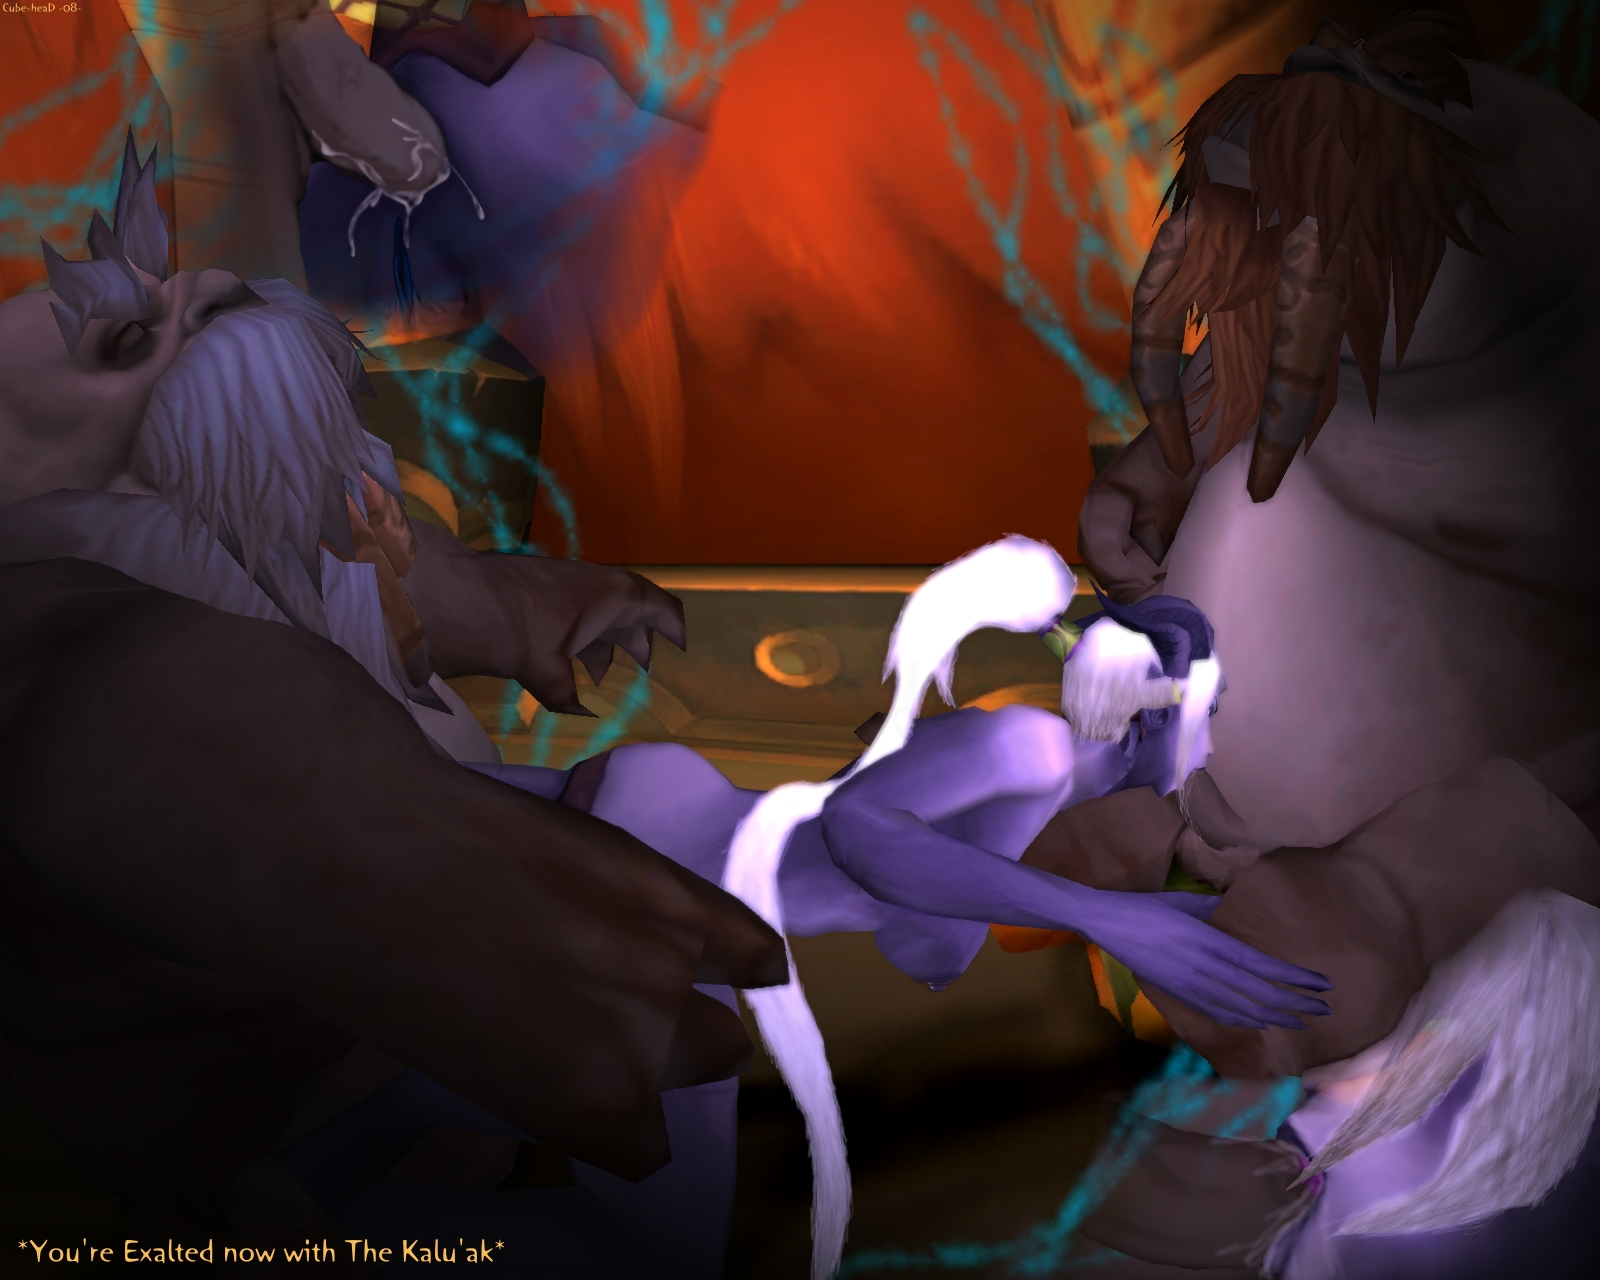 World of warcraft jizz net erotic photos